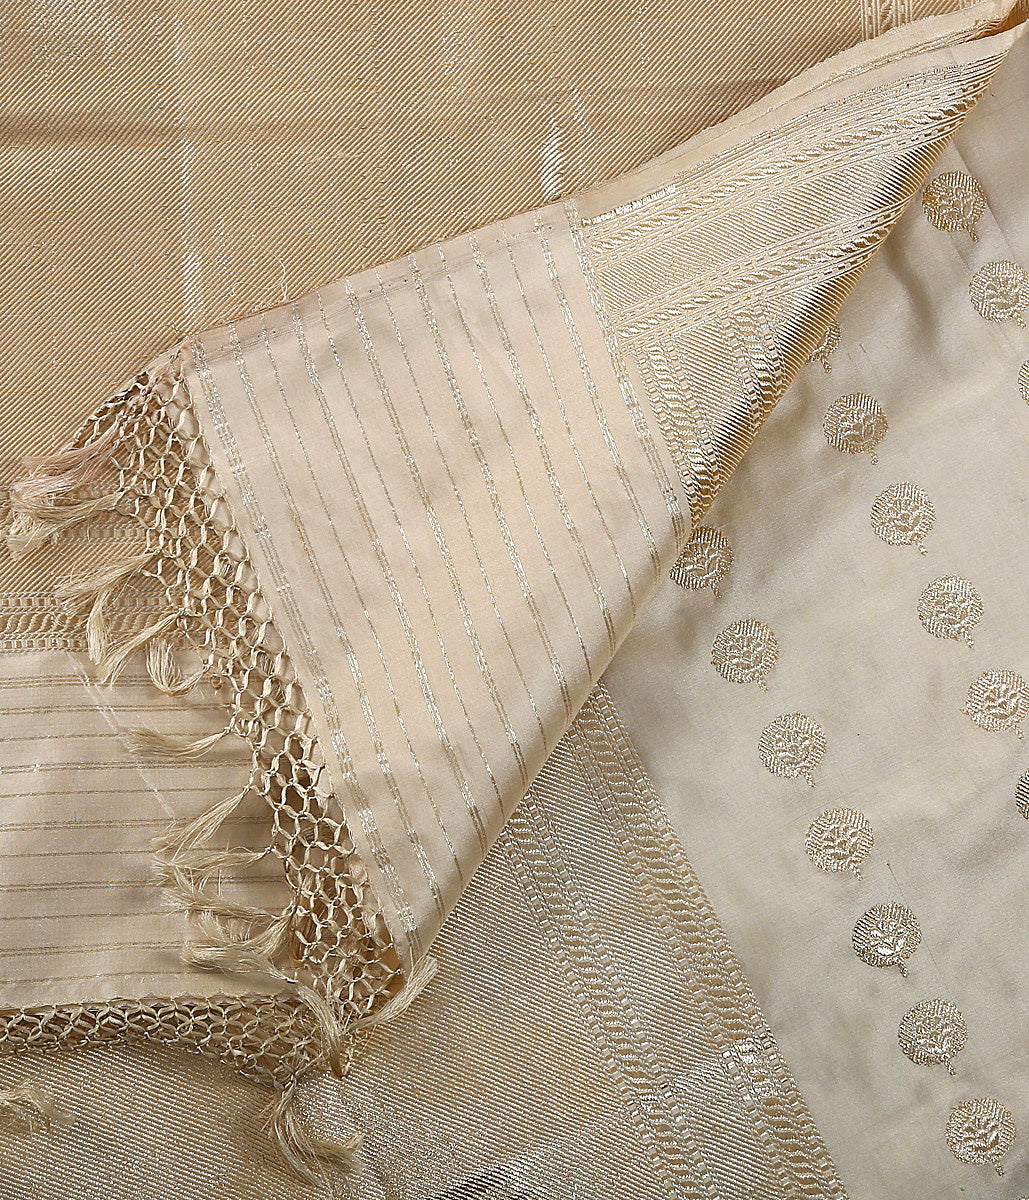 Offwhite and gold Kadhwa Booti Dupatta with real zari